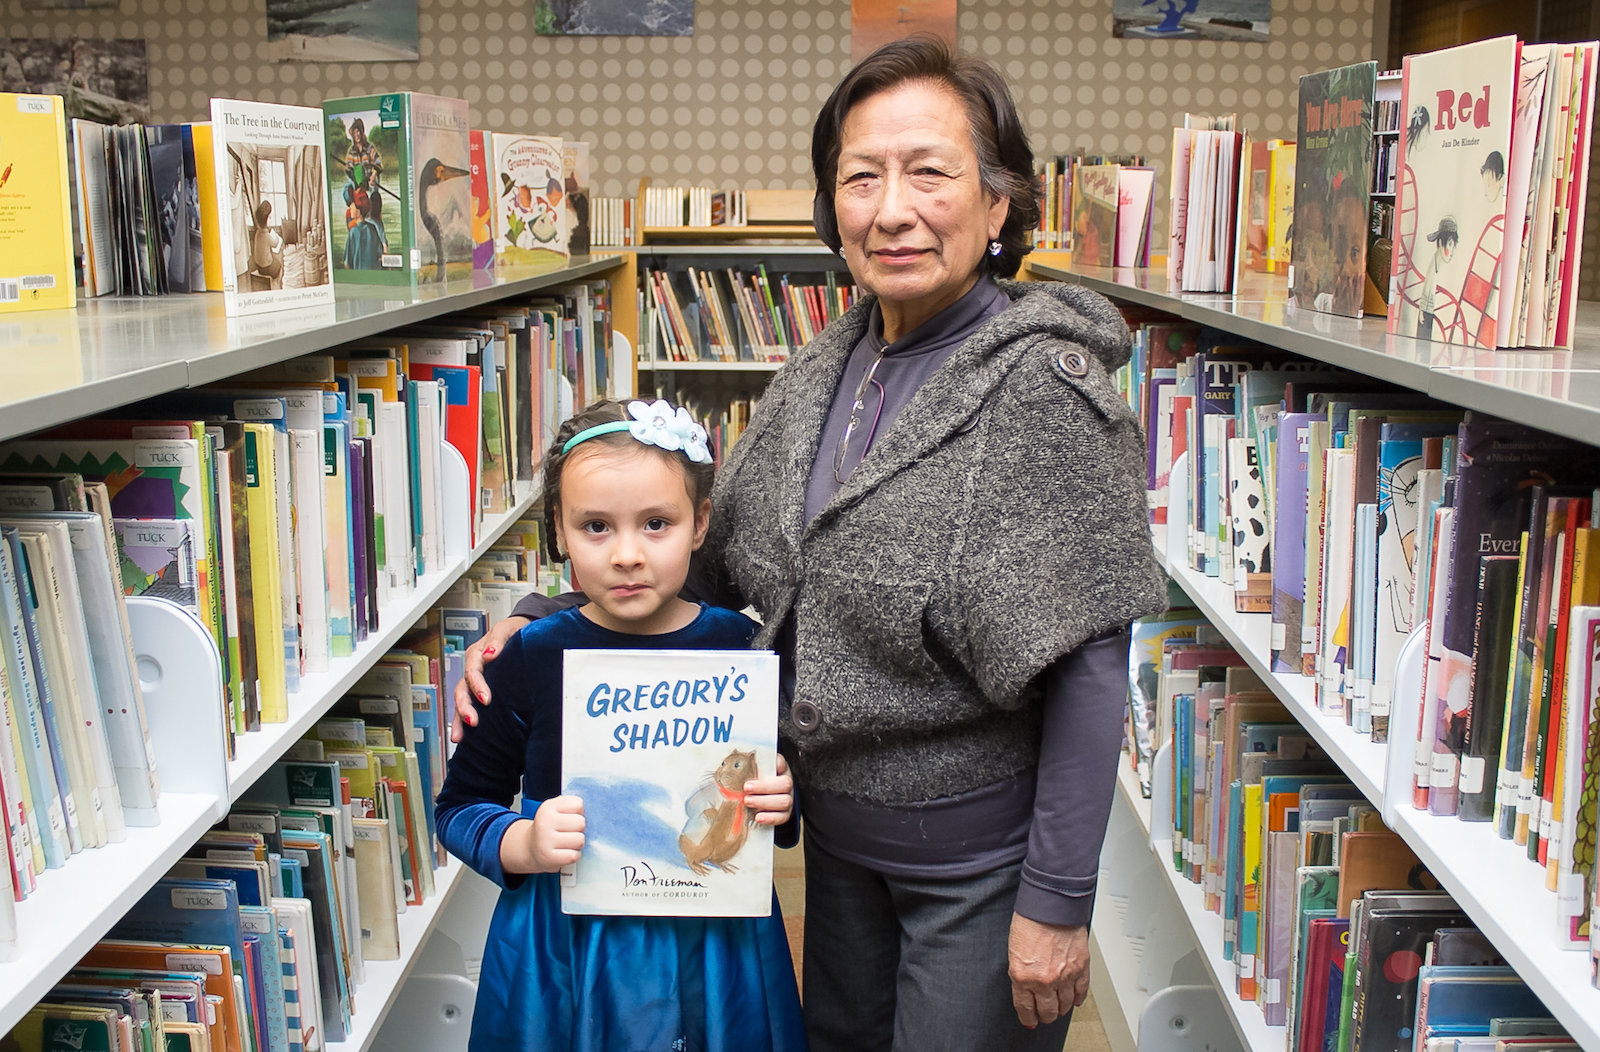 girl holding book standing with grandmother